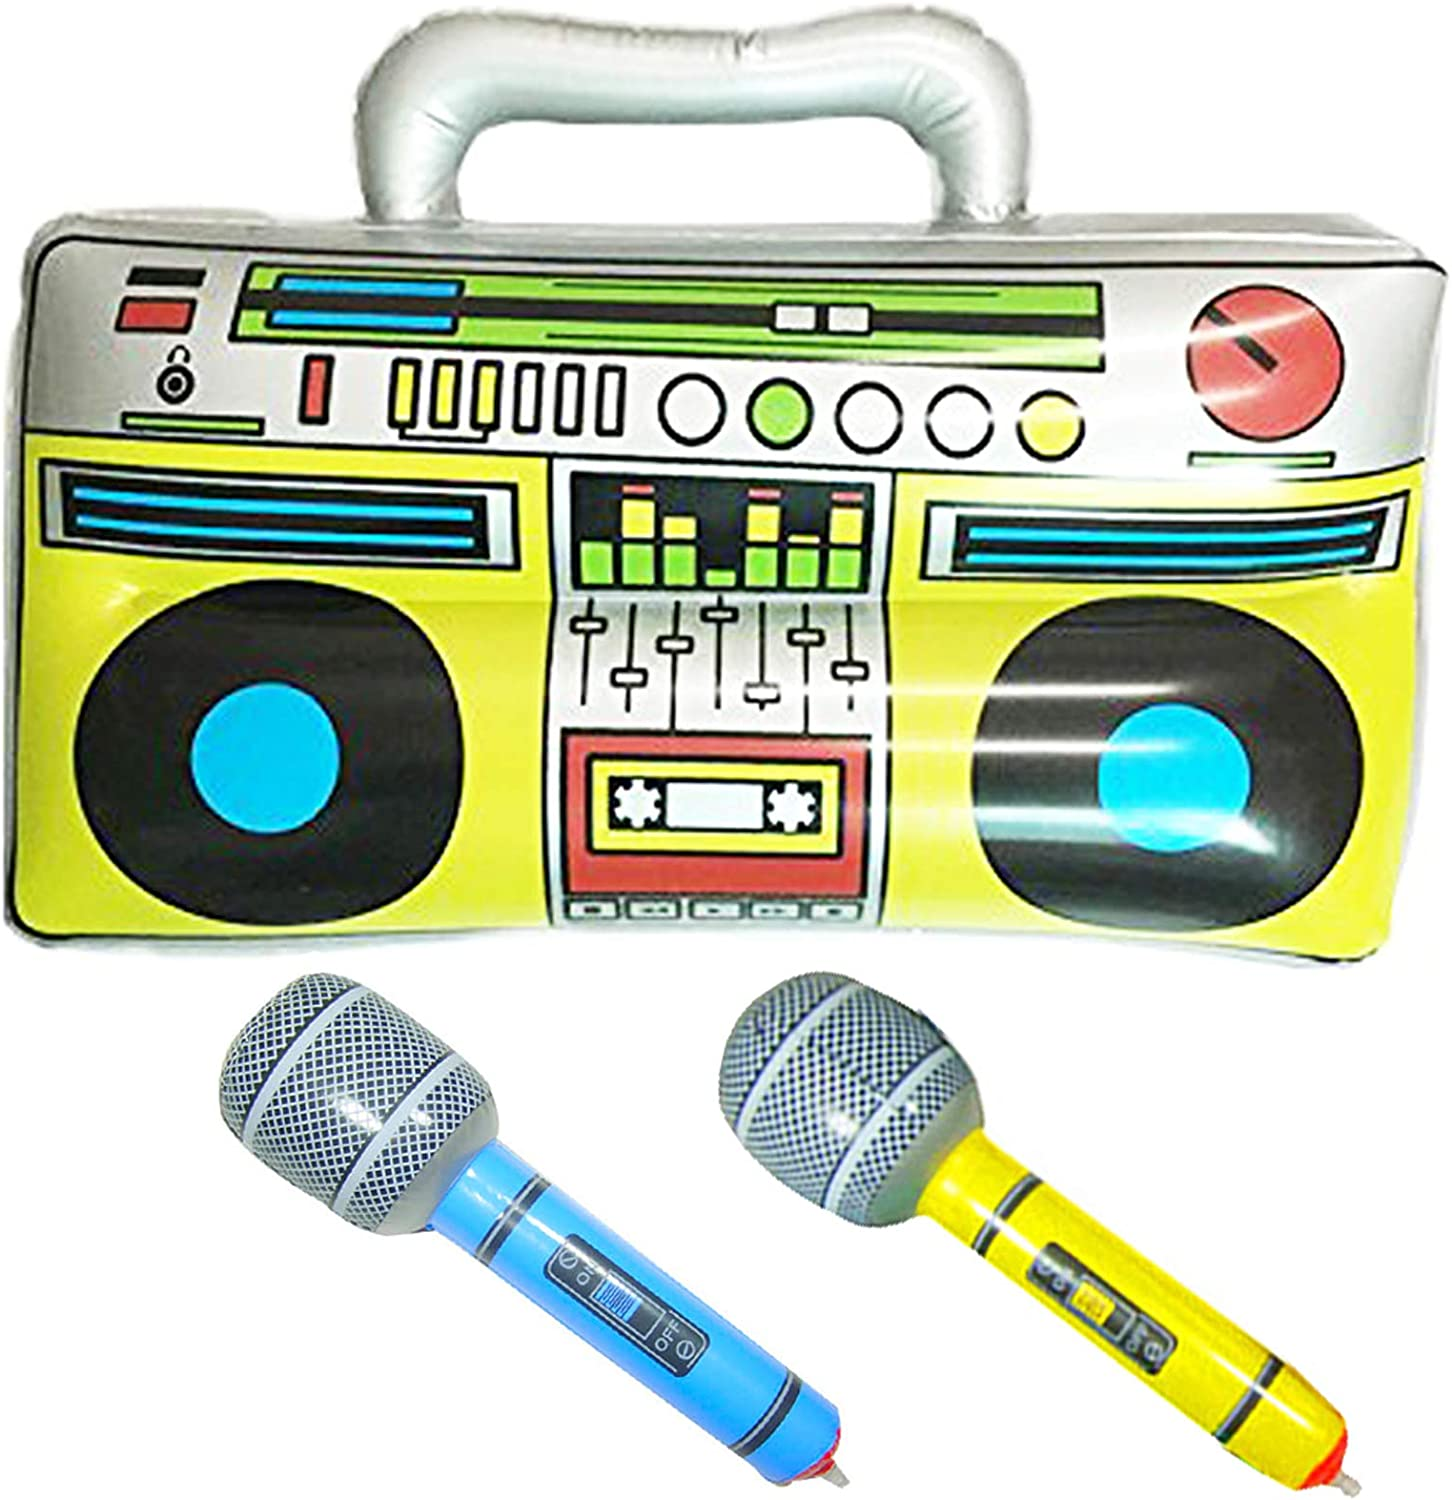 """GuassLee 16"""" Party Inflatable Boom Box PVC Radio + 2 Microphones for Inflatable Props 80s Party Decorations"""